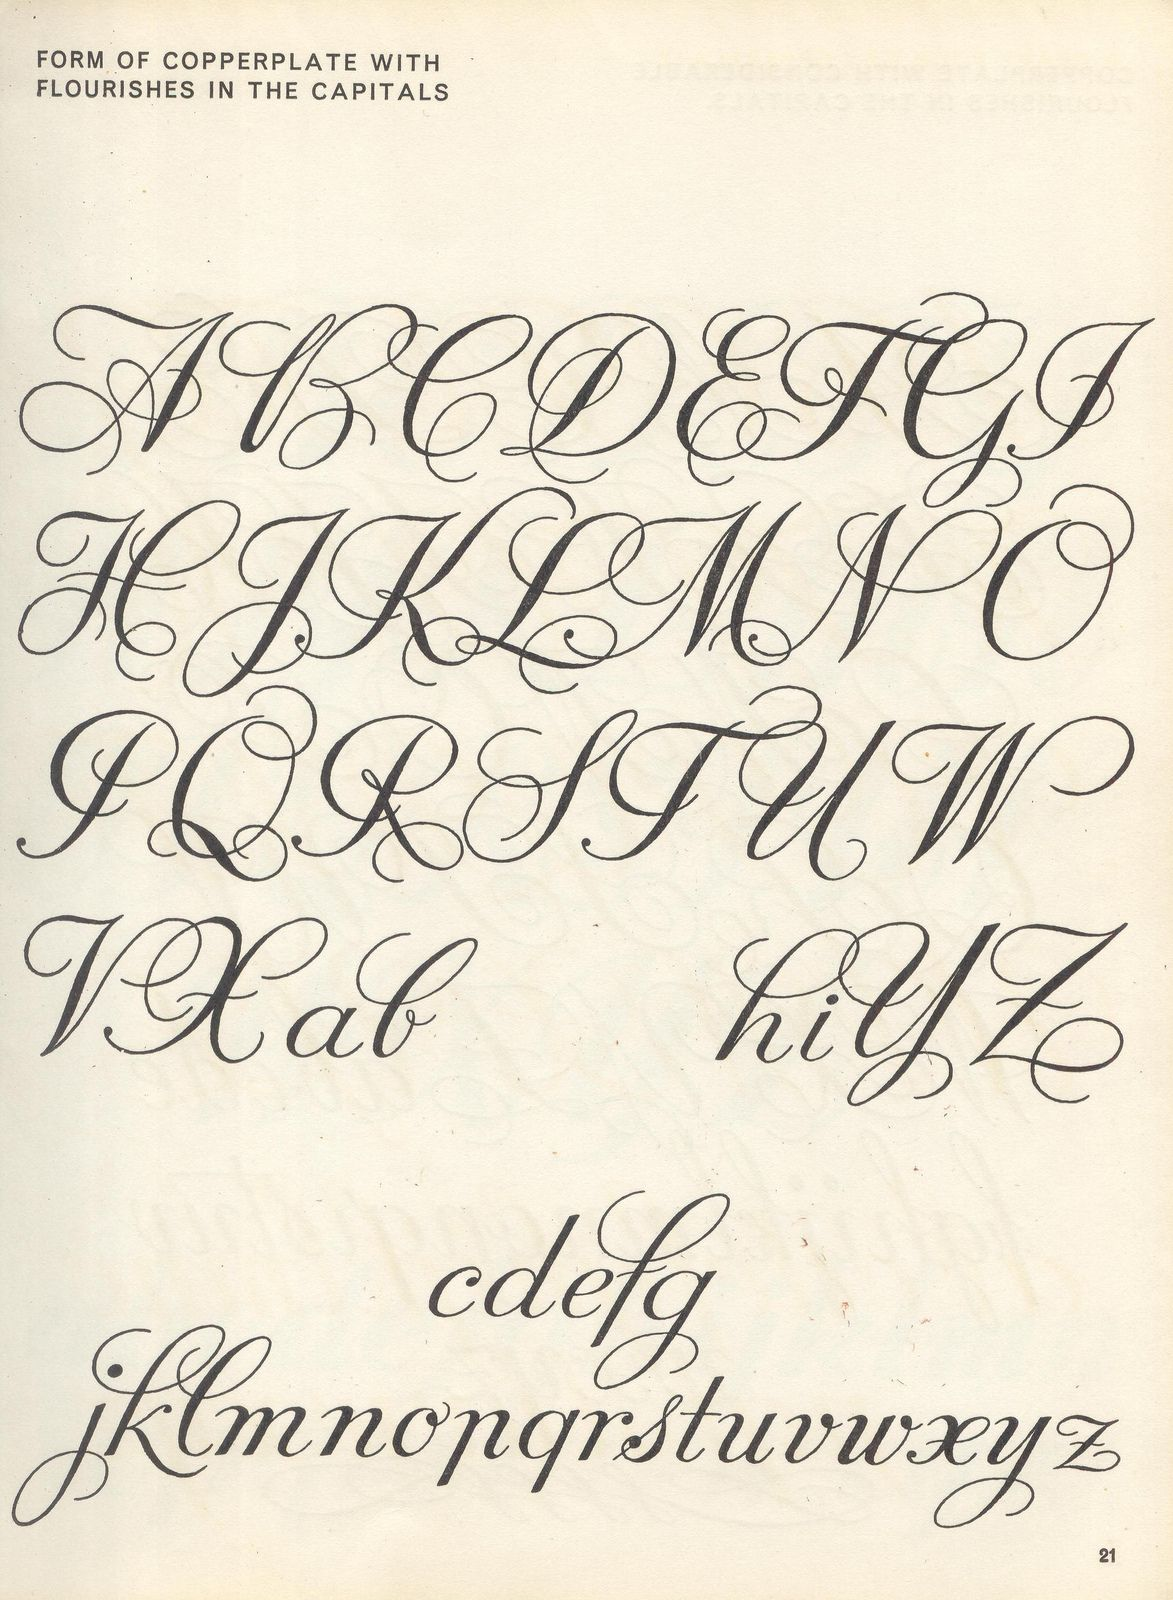 Sciptlettering P15 Copperplate Calligraphy Calligraphy Alphabet